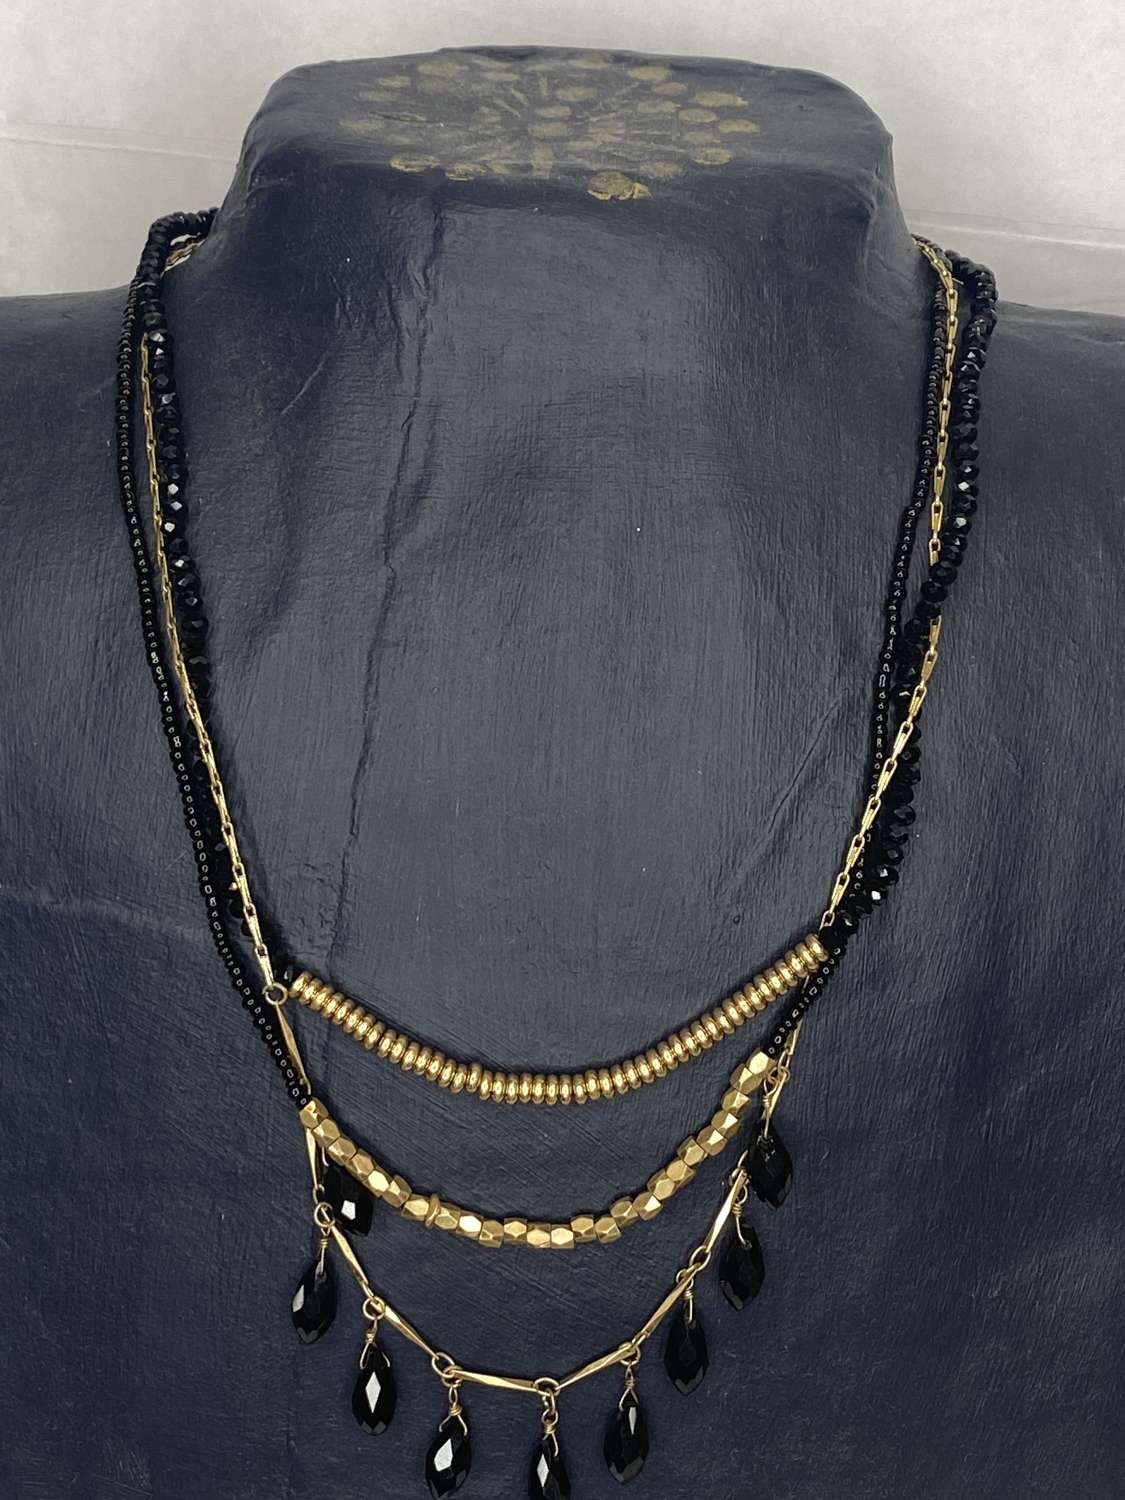 Envy black and gold multi-strand necklace